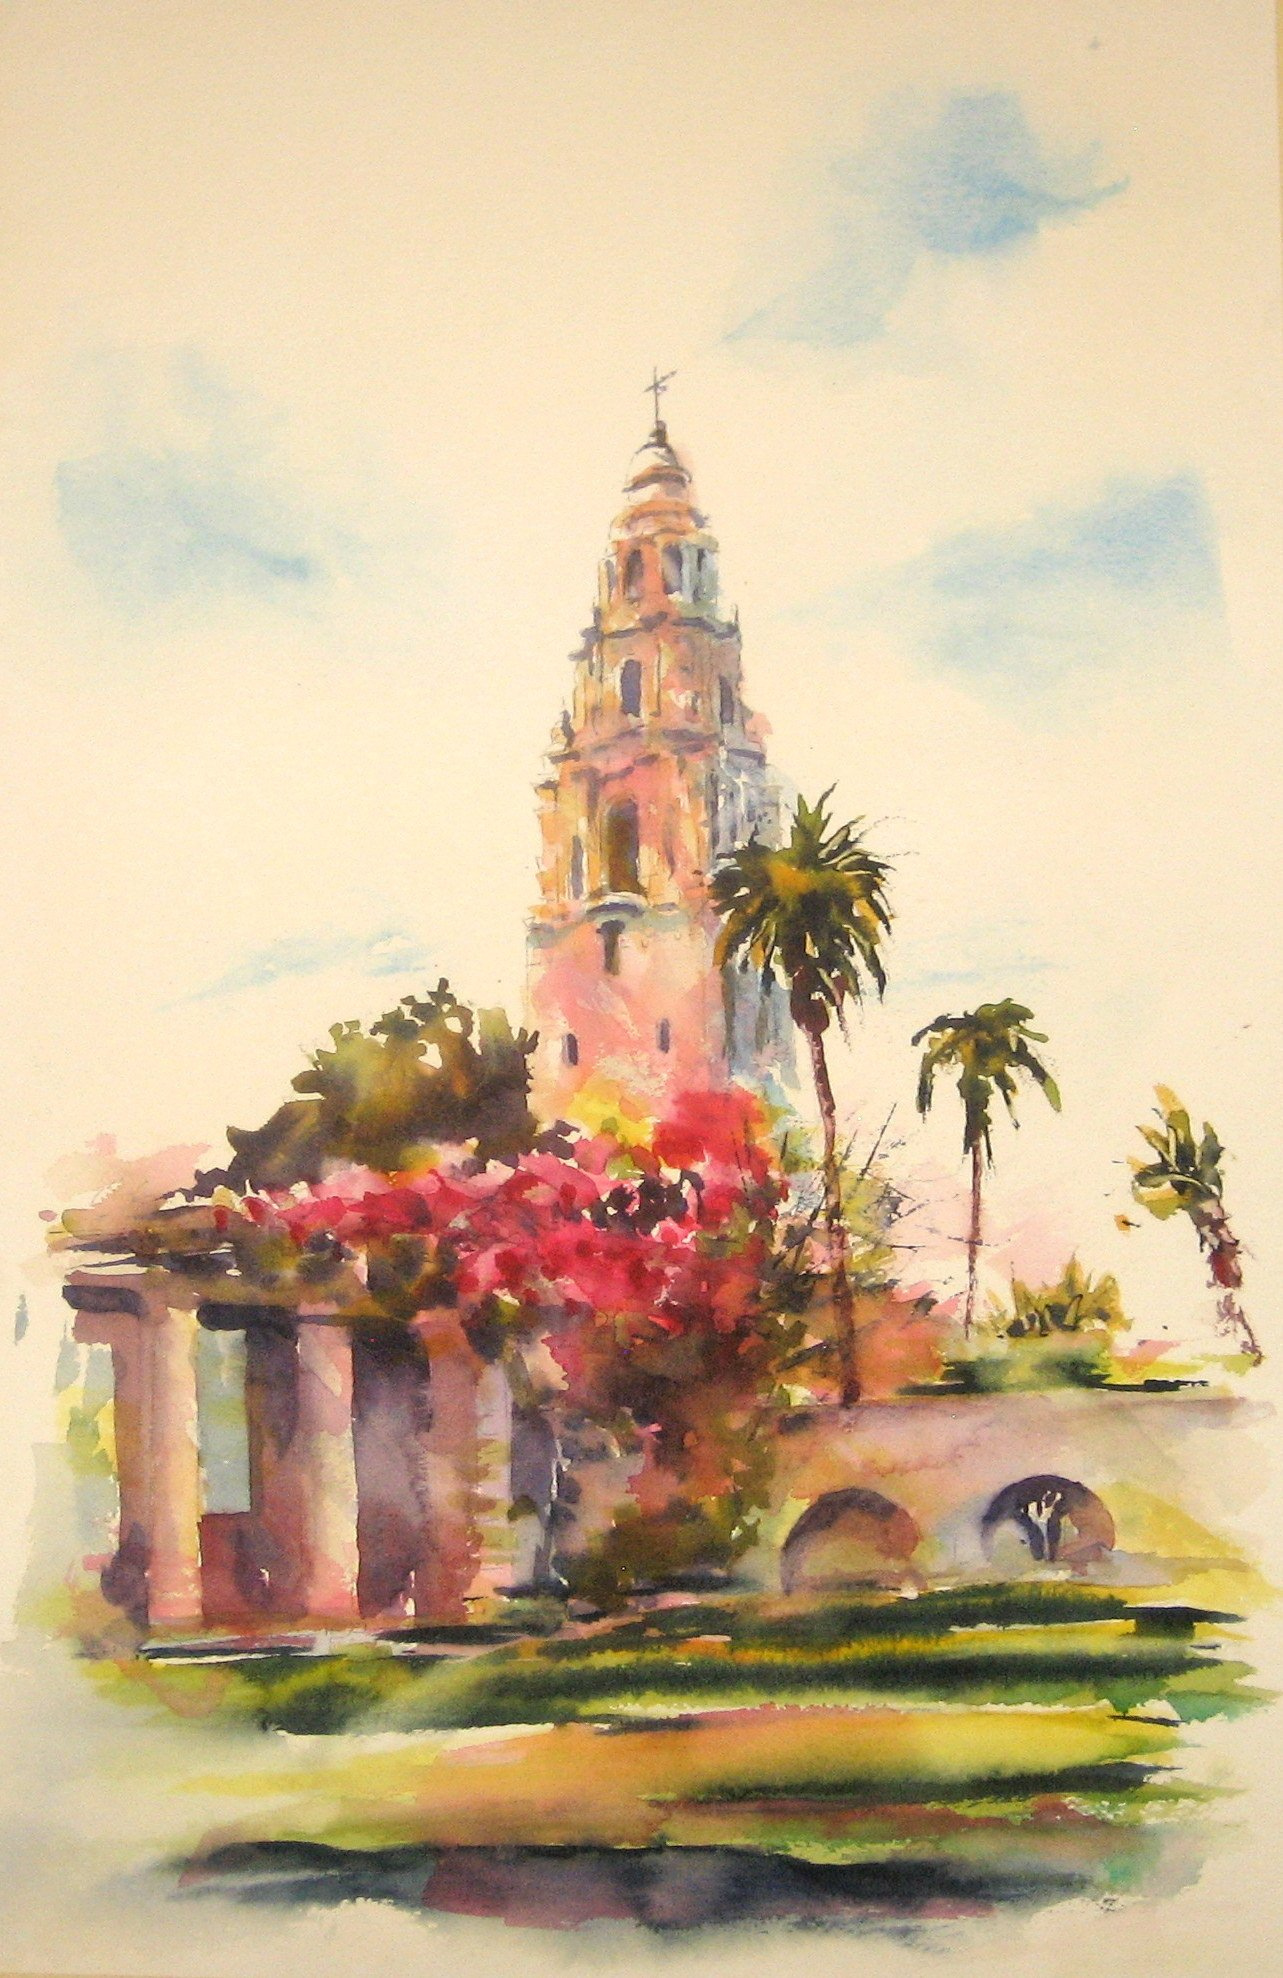 https://0201.nccdn.net/1_2/000/000/0a6/657/California-Tower-Balboa-Park-1283x1978.jpg